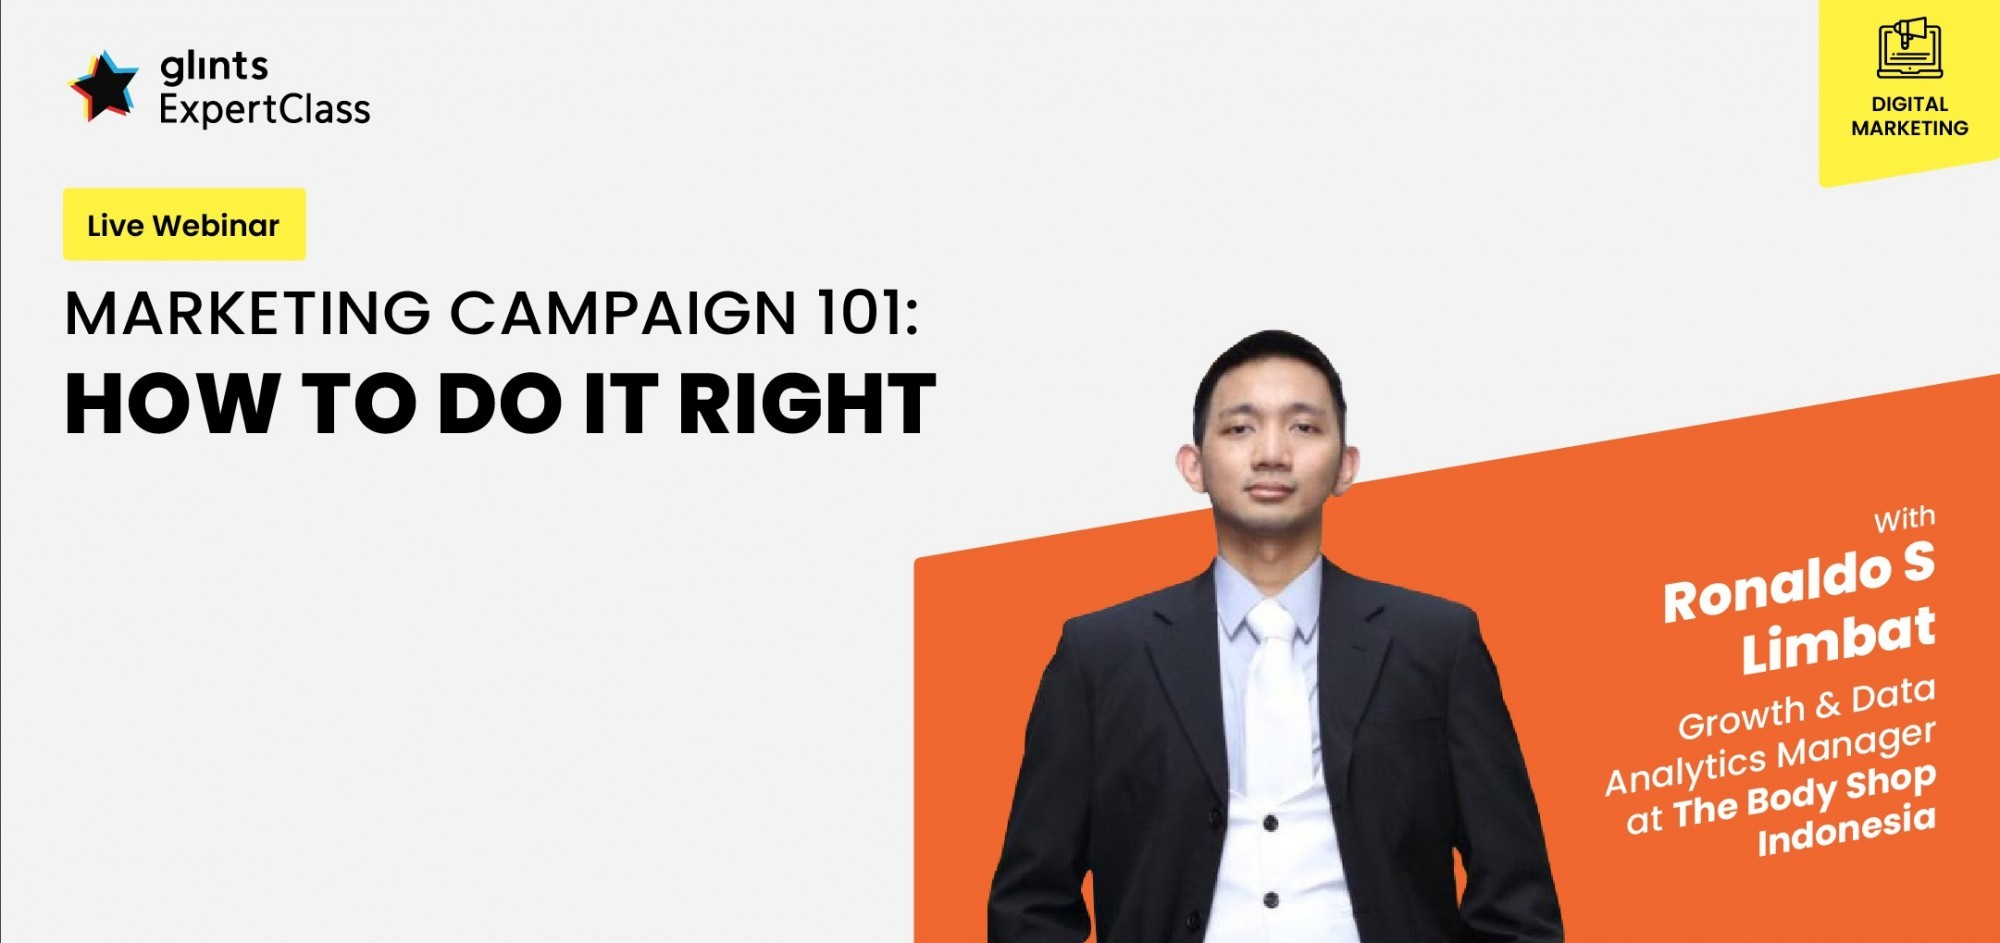 [Online Glints ExpertClass] Marketing Campaign 101: How To Do It Right